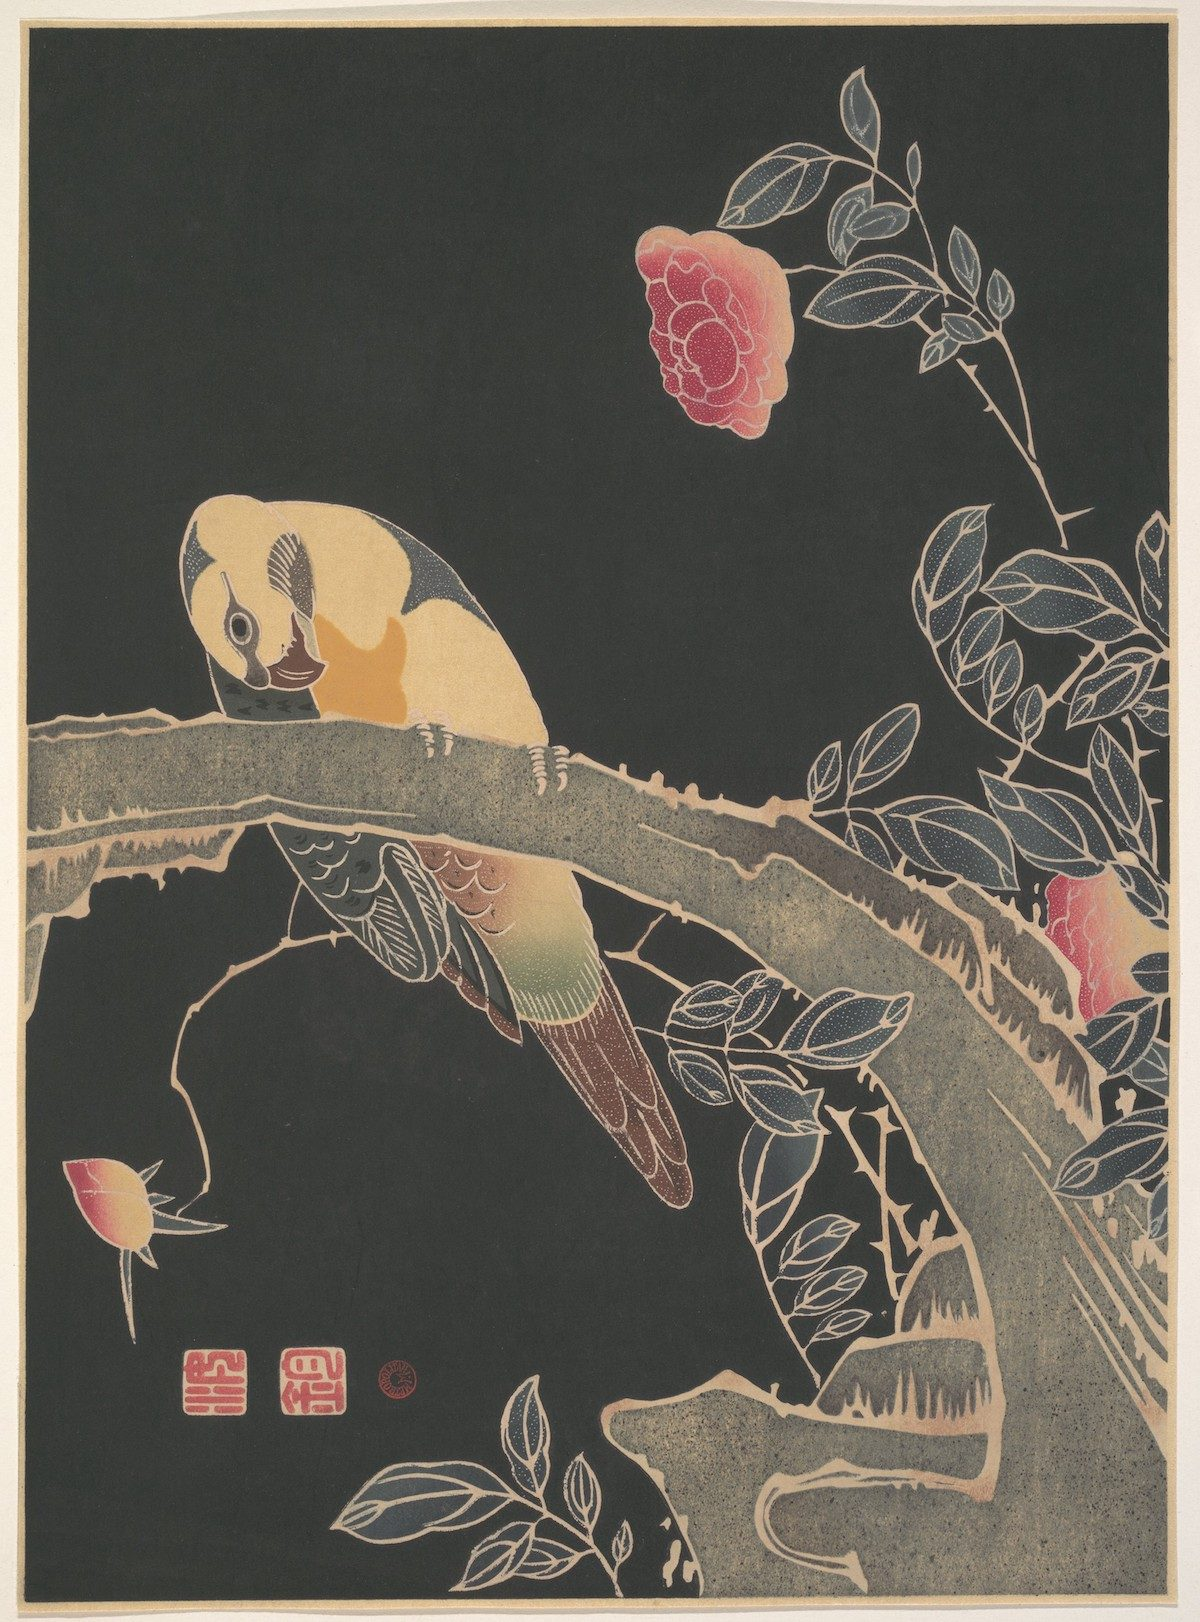 Parrot on the Branch of a Flowering Rose Bush (ca. 1900) illustration by Ito Jakuchu.